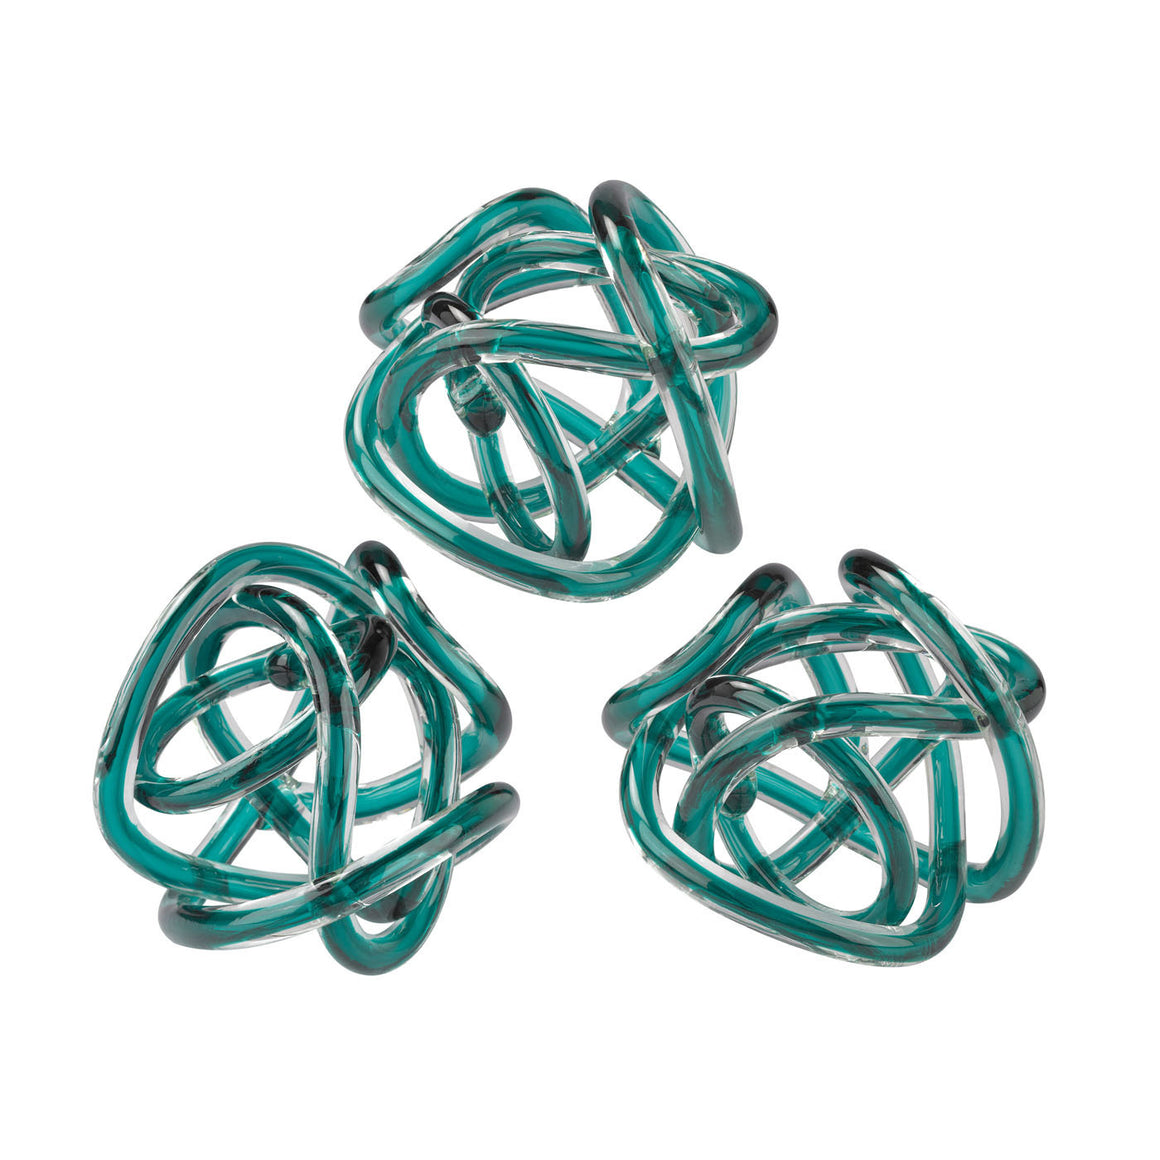 Aqua Glass Knot 154-020/S3 by Dimond Home